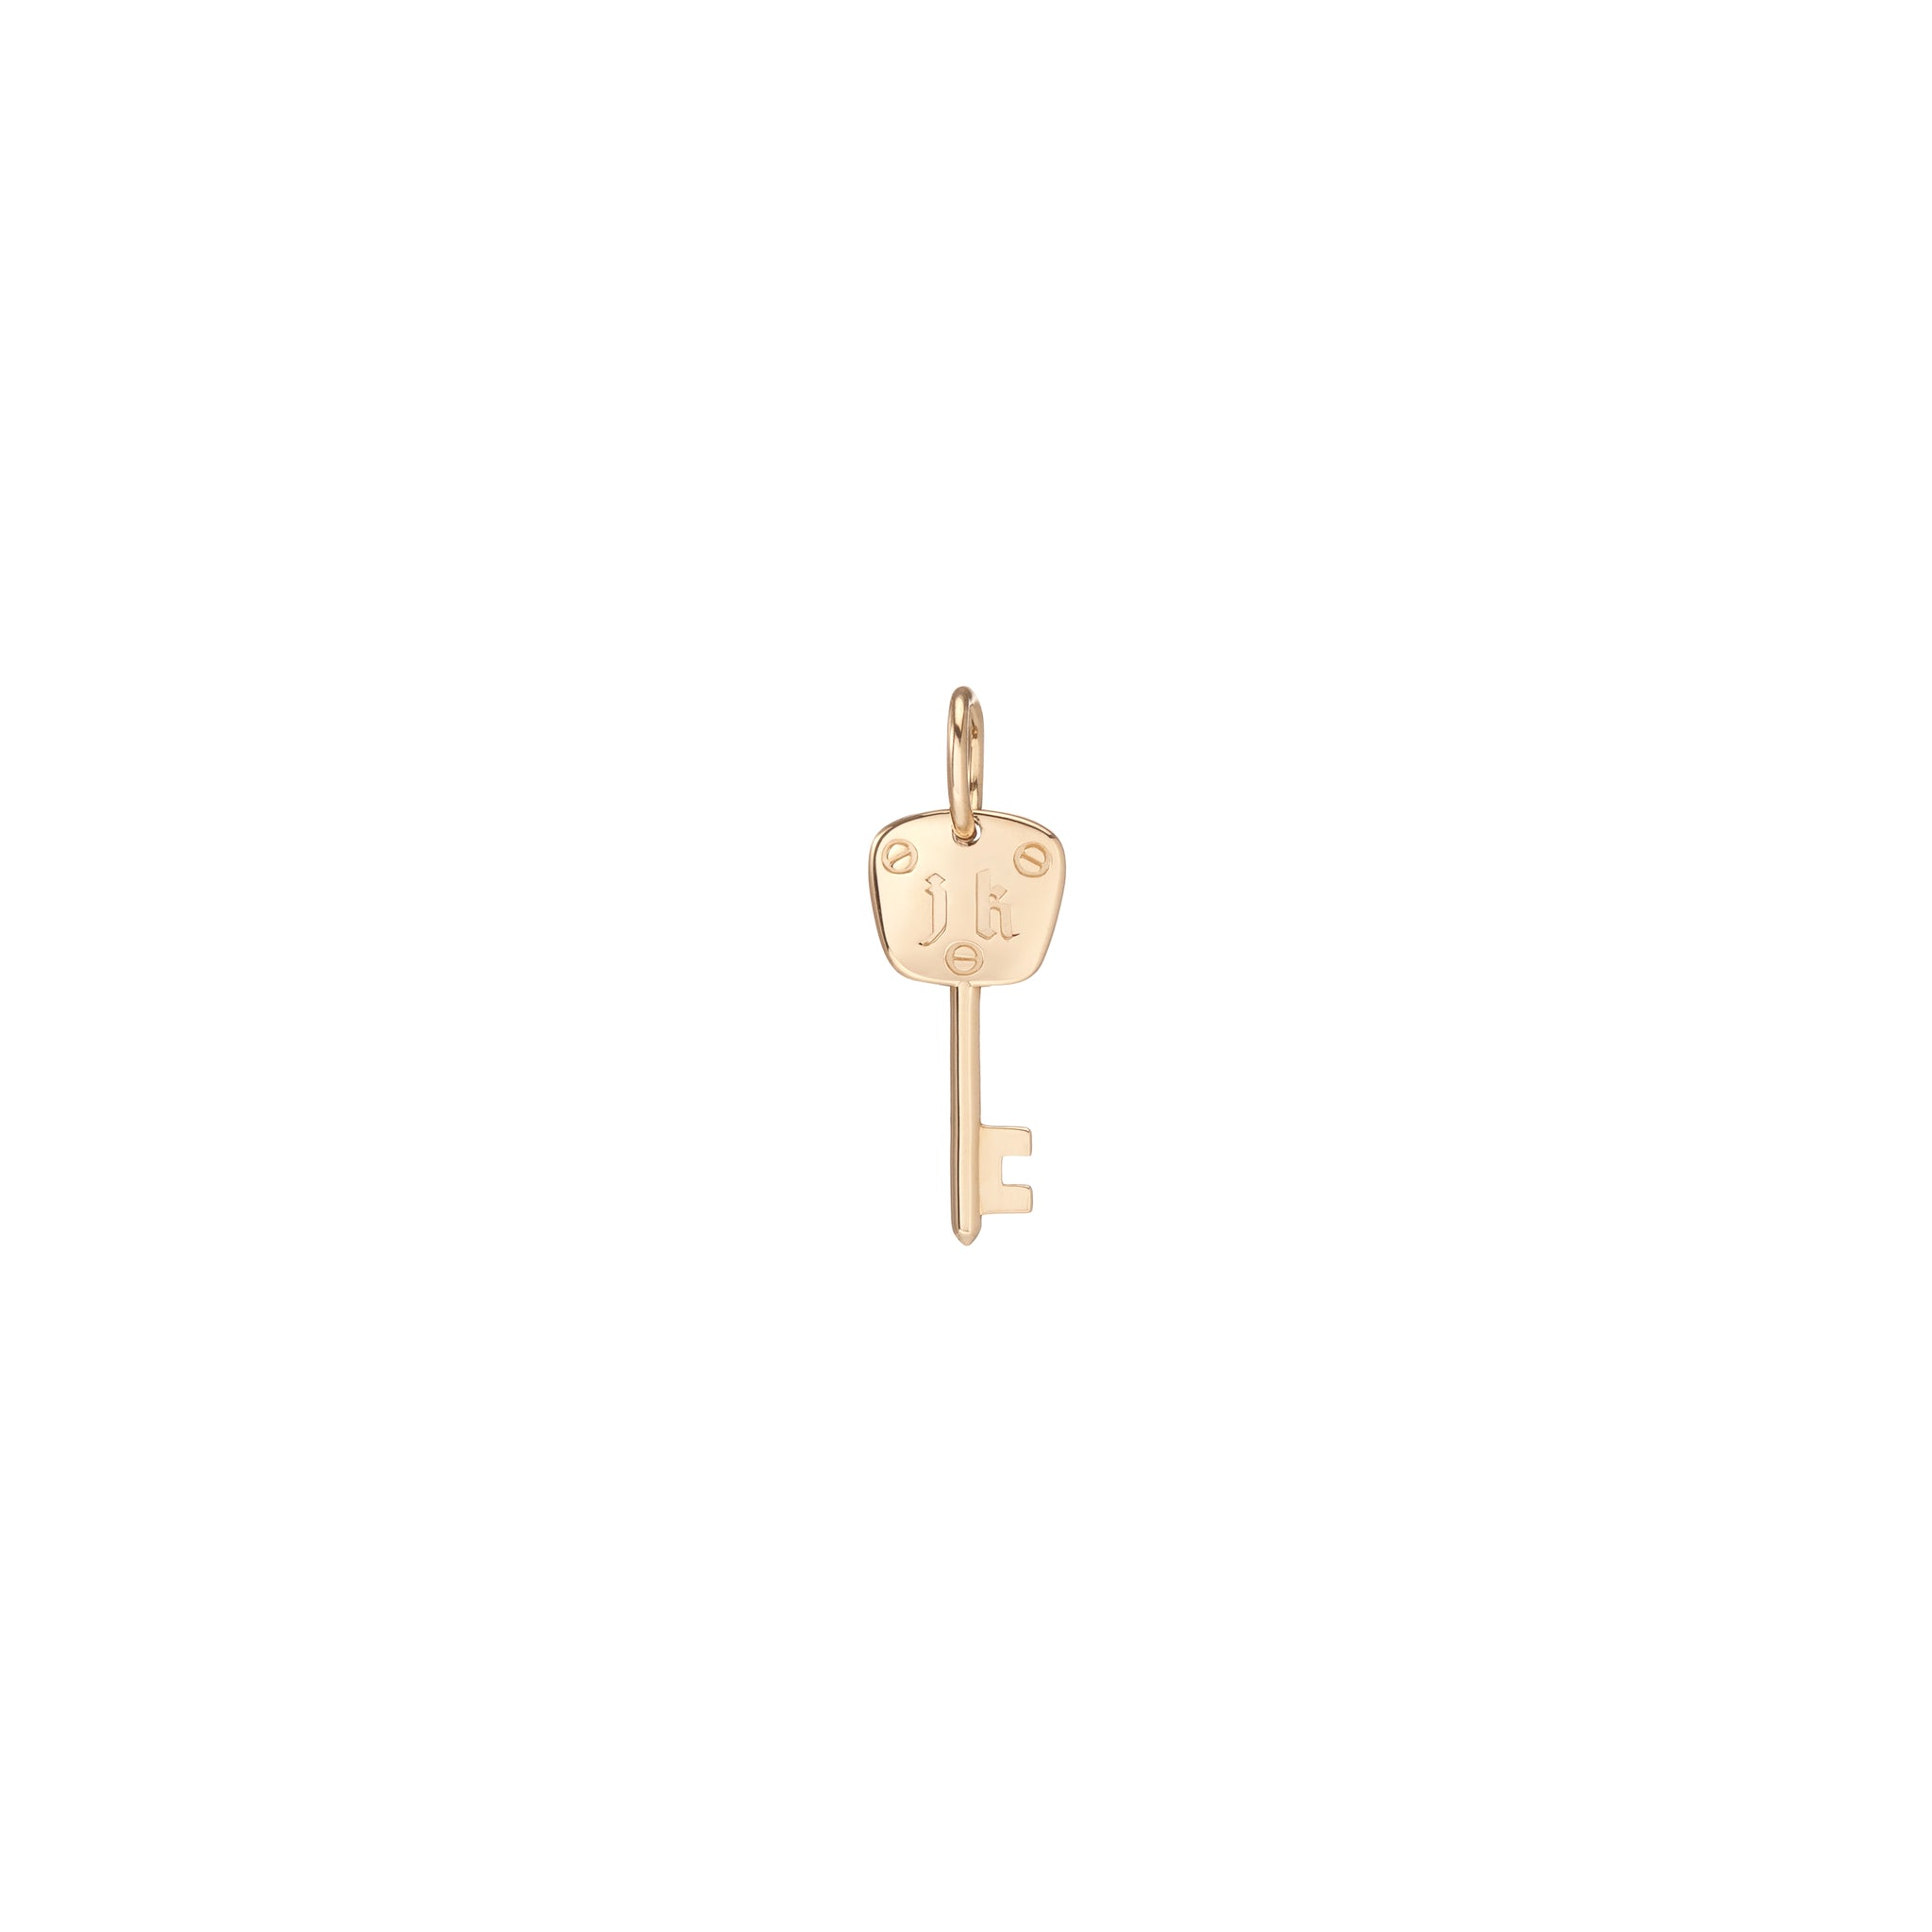 Small Family Gothic Key